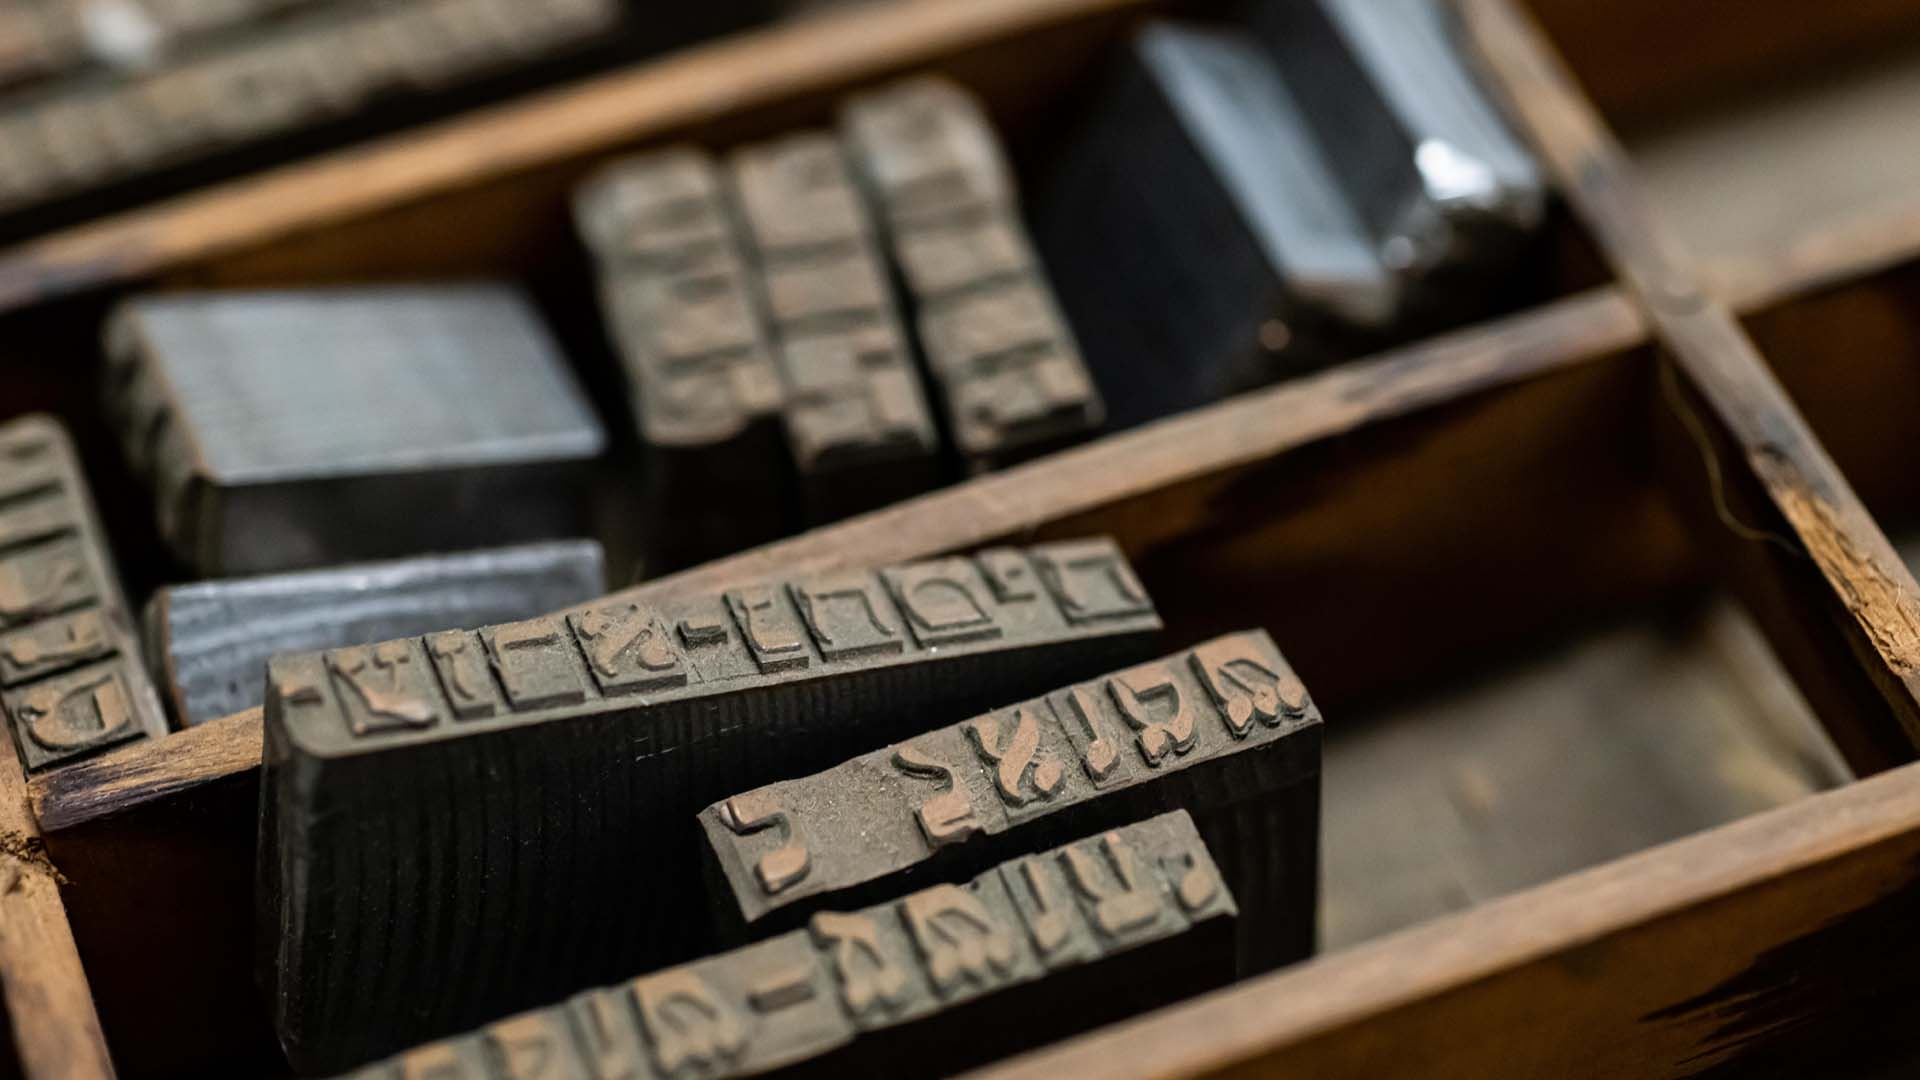 Detail of metal printing type in a wooden tray